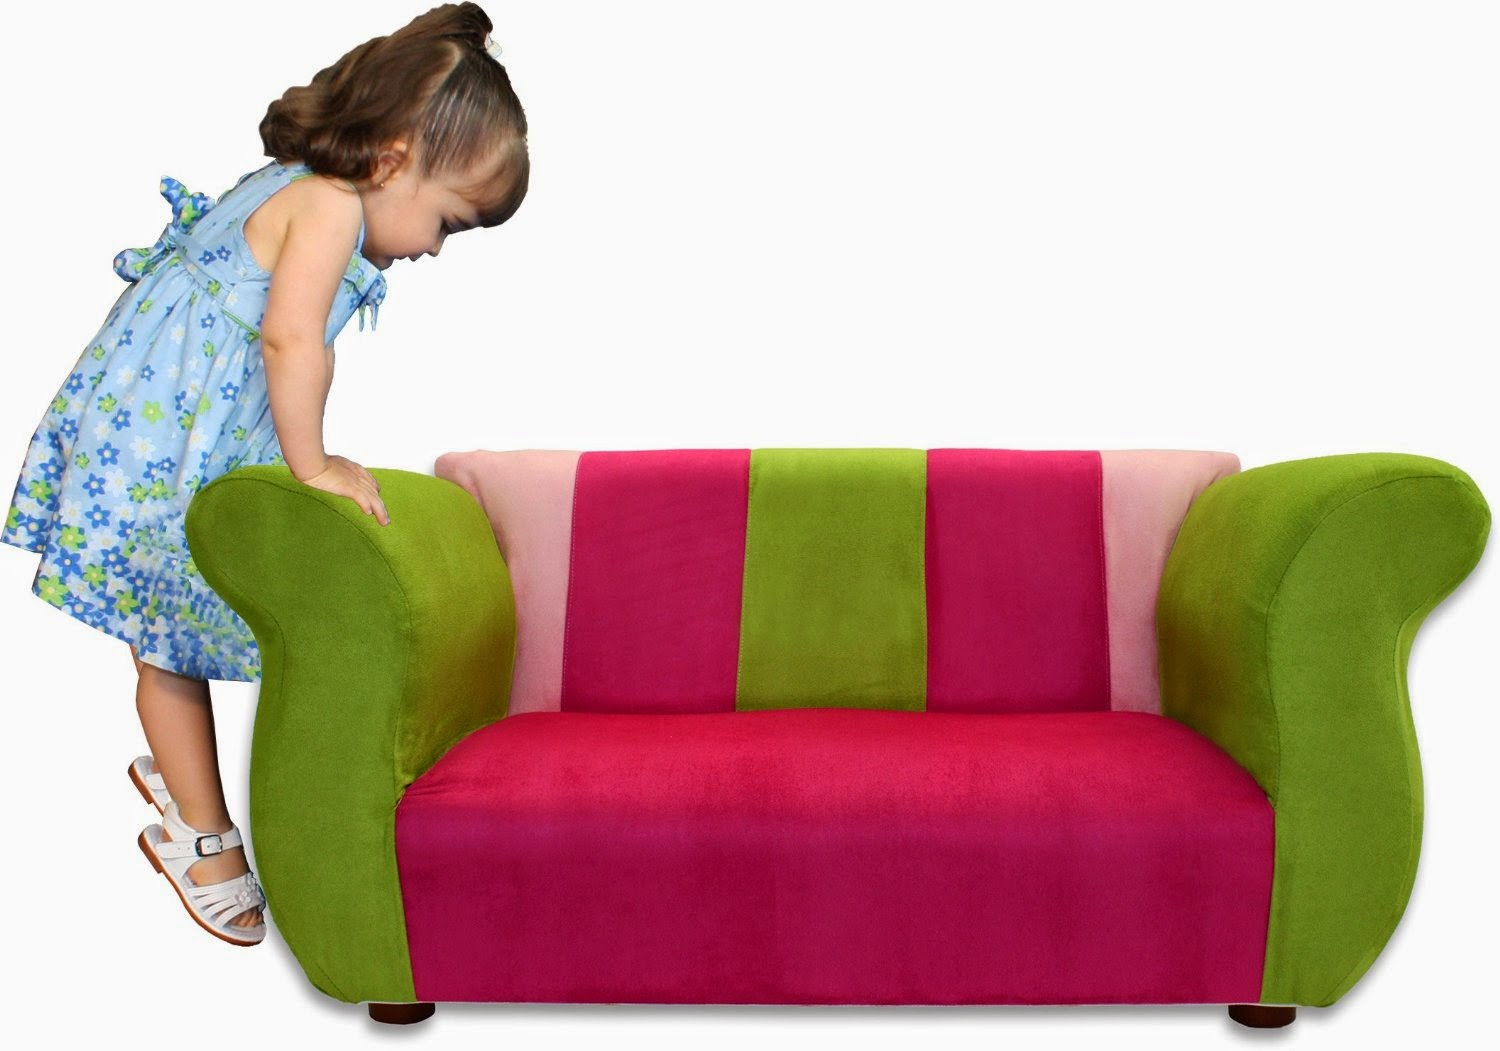 Kids couch mini couch for kids Kids lounge sofa